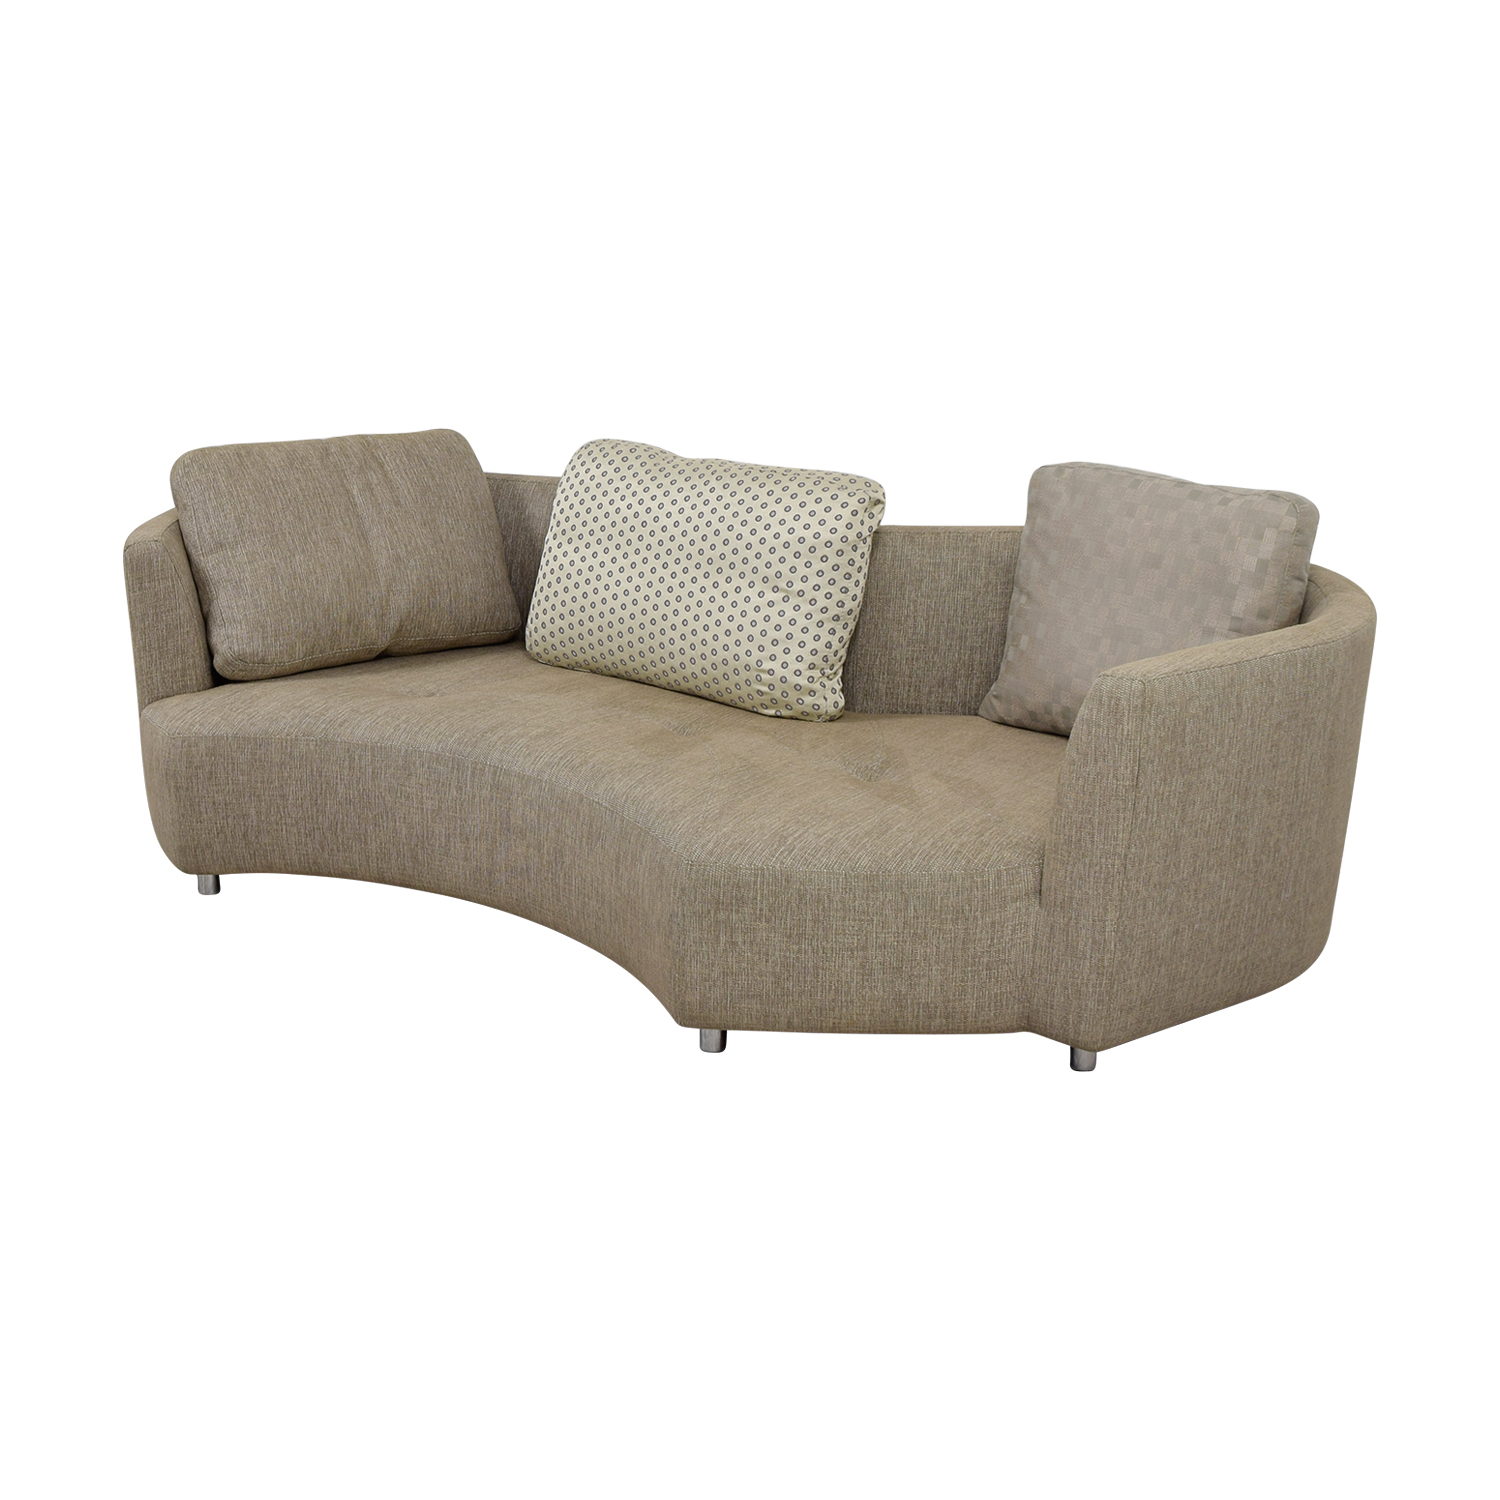 Roche Bobois Three Seater Tan Tweed Sofa Sofas